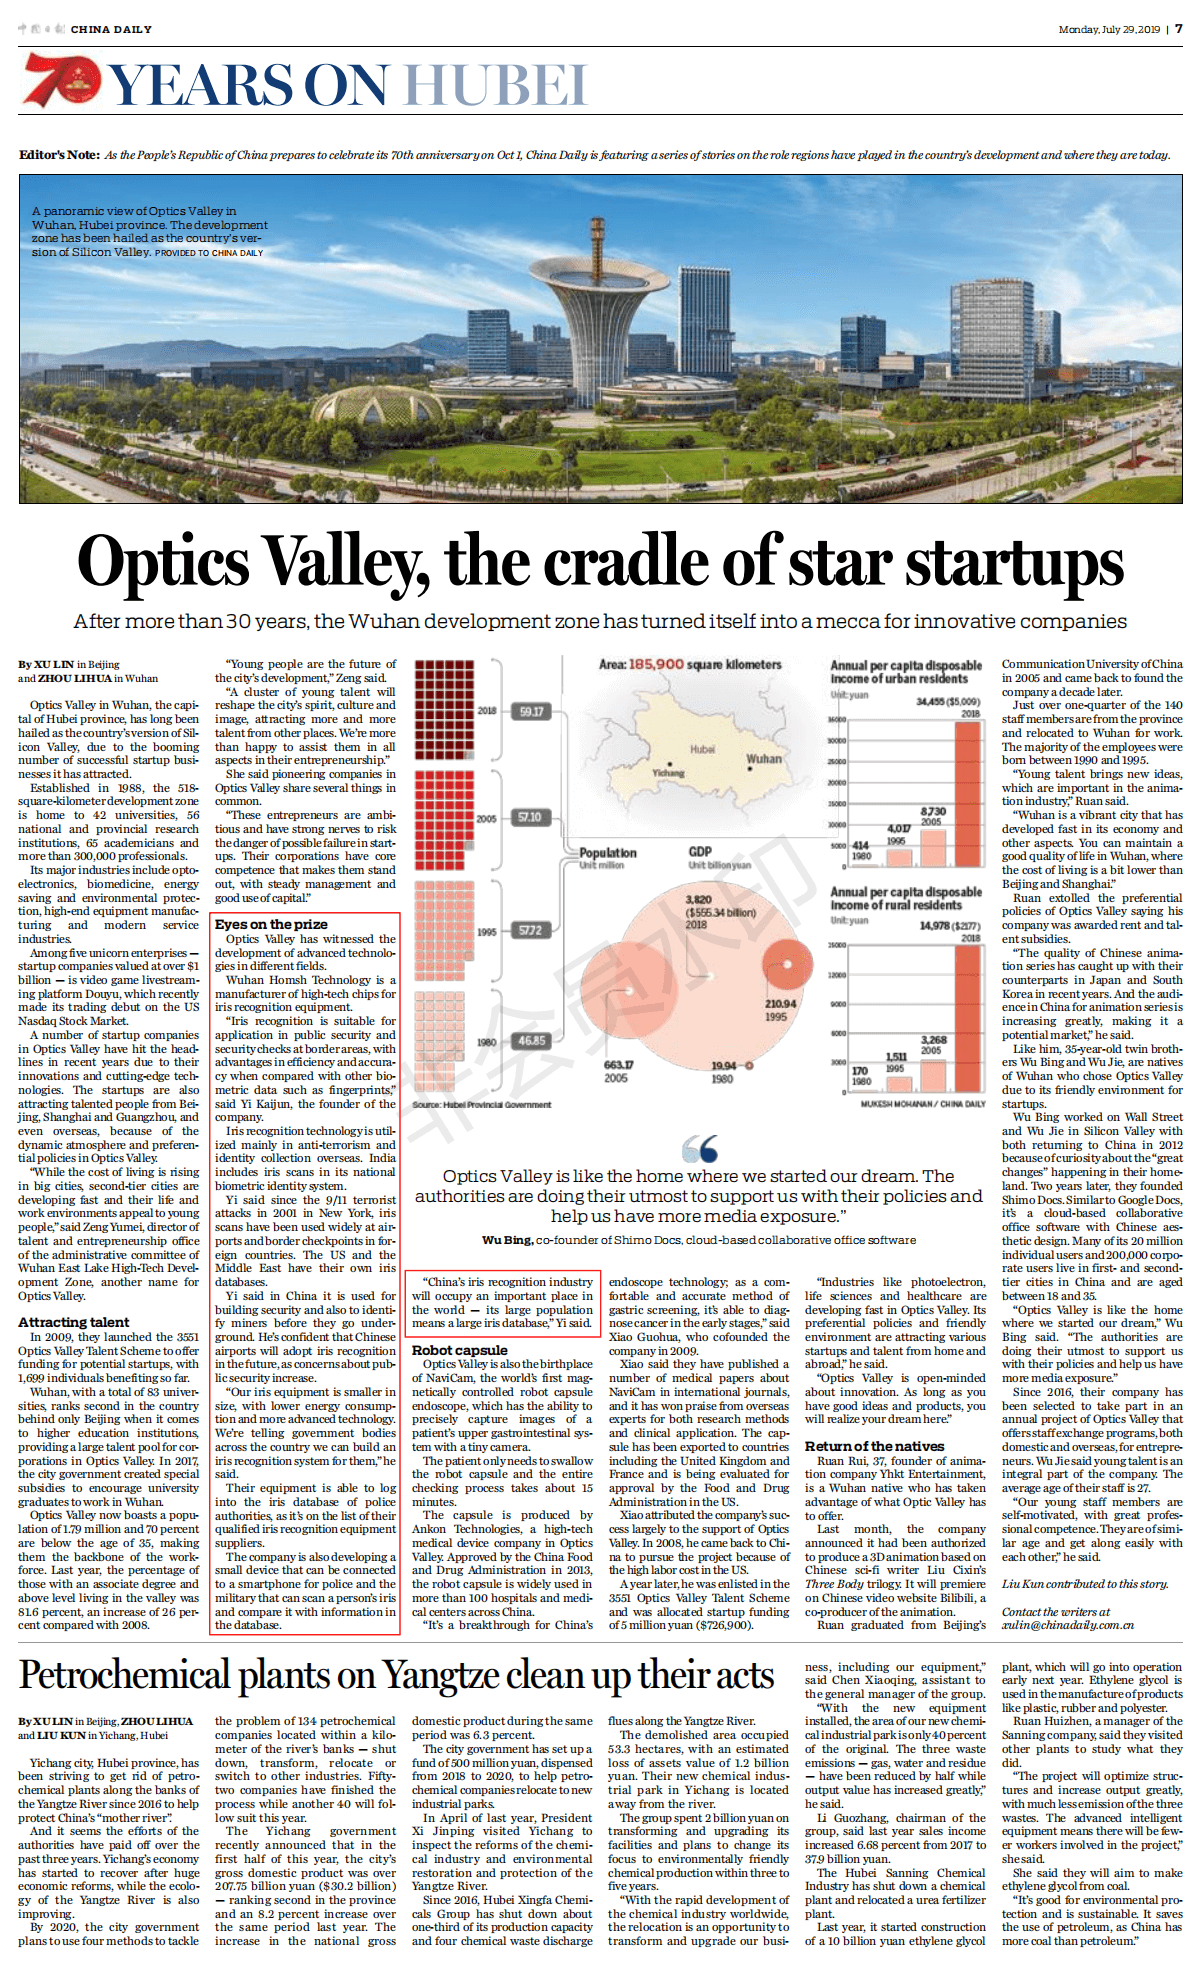 Homsh Technology reported by China Daily